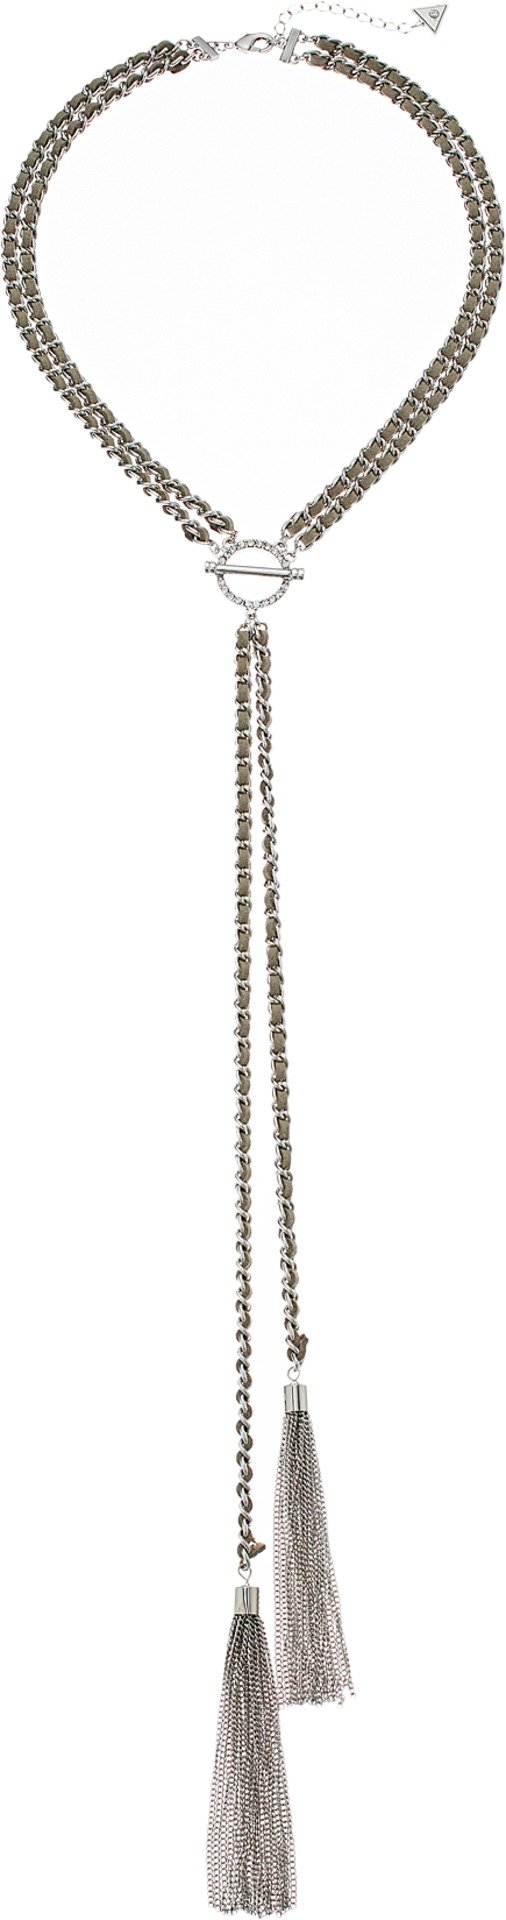 GUESS Nude Metals Women's Lariet Y Shaped Necklace, Silver, One Size